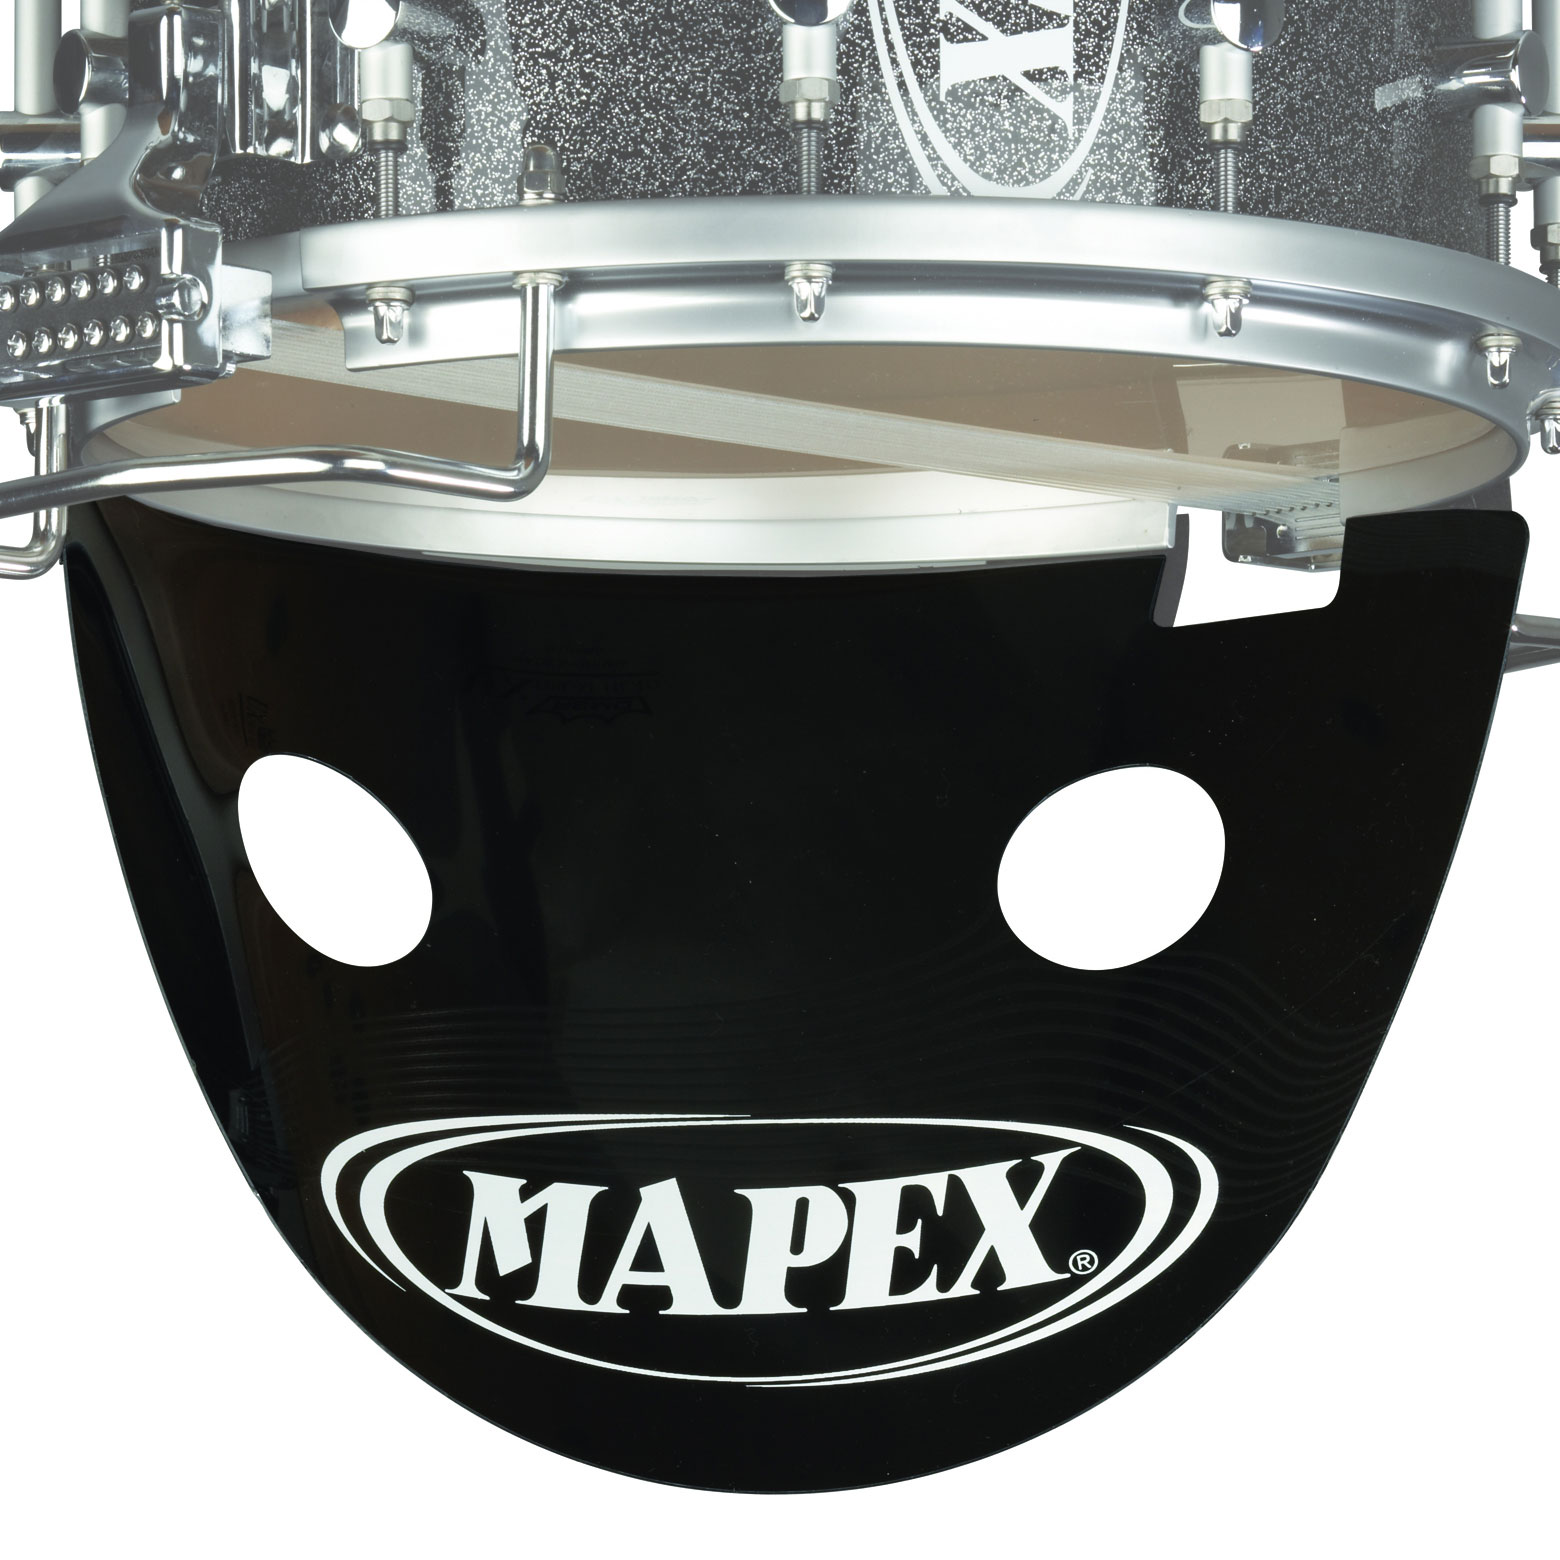 "Mapex 14"" Black Snare Drum Projector with Mapex Logo"